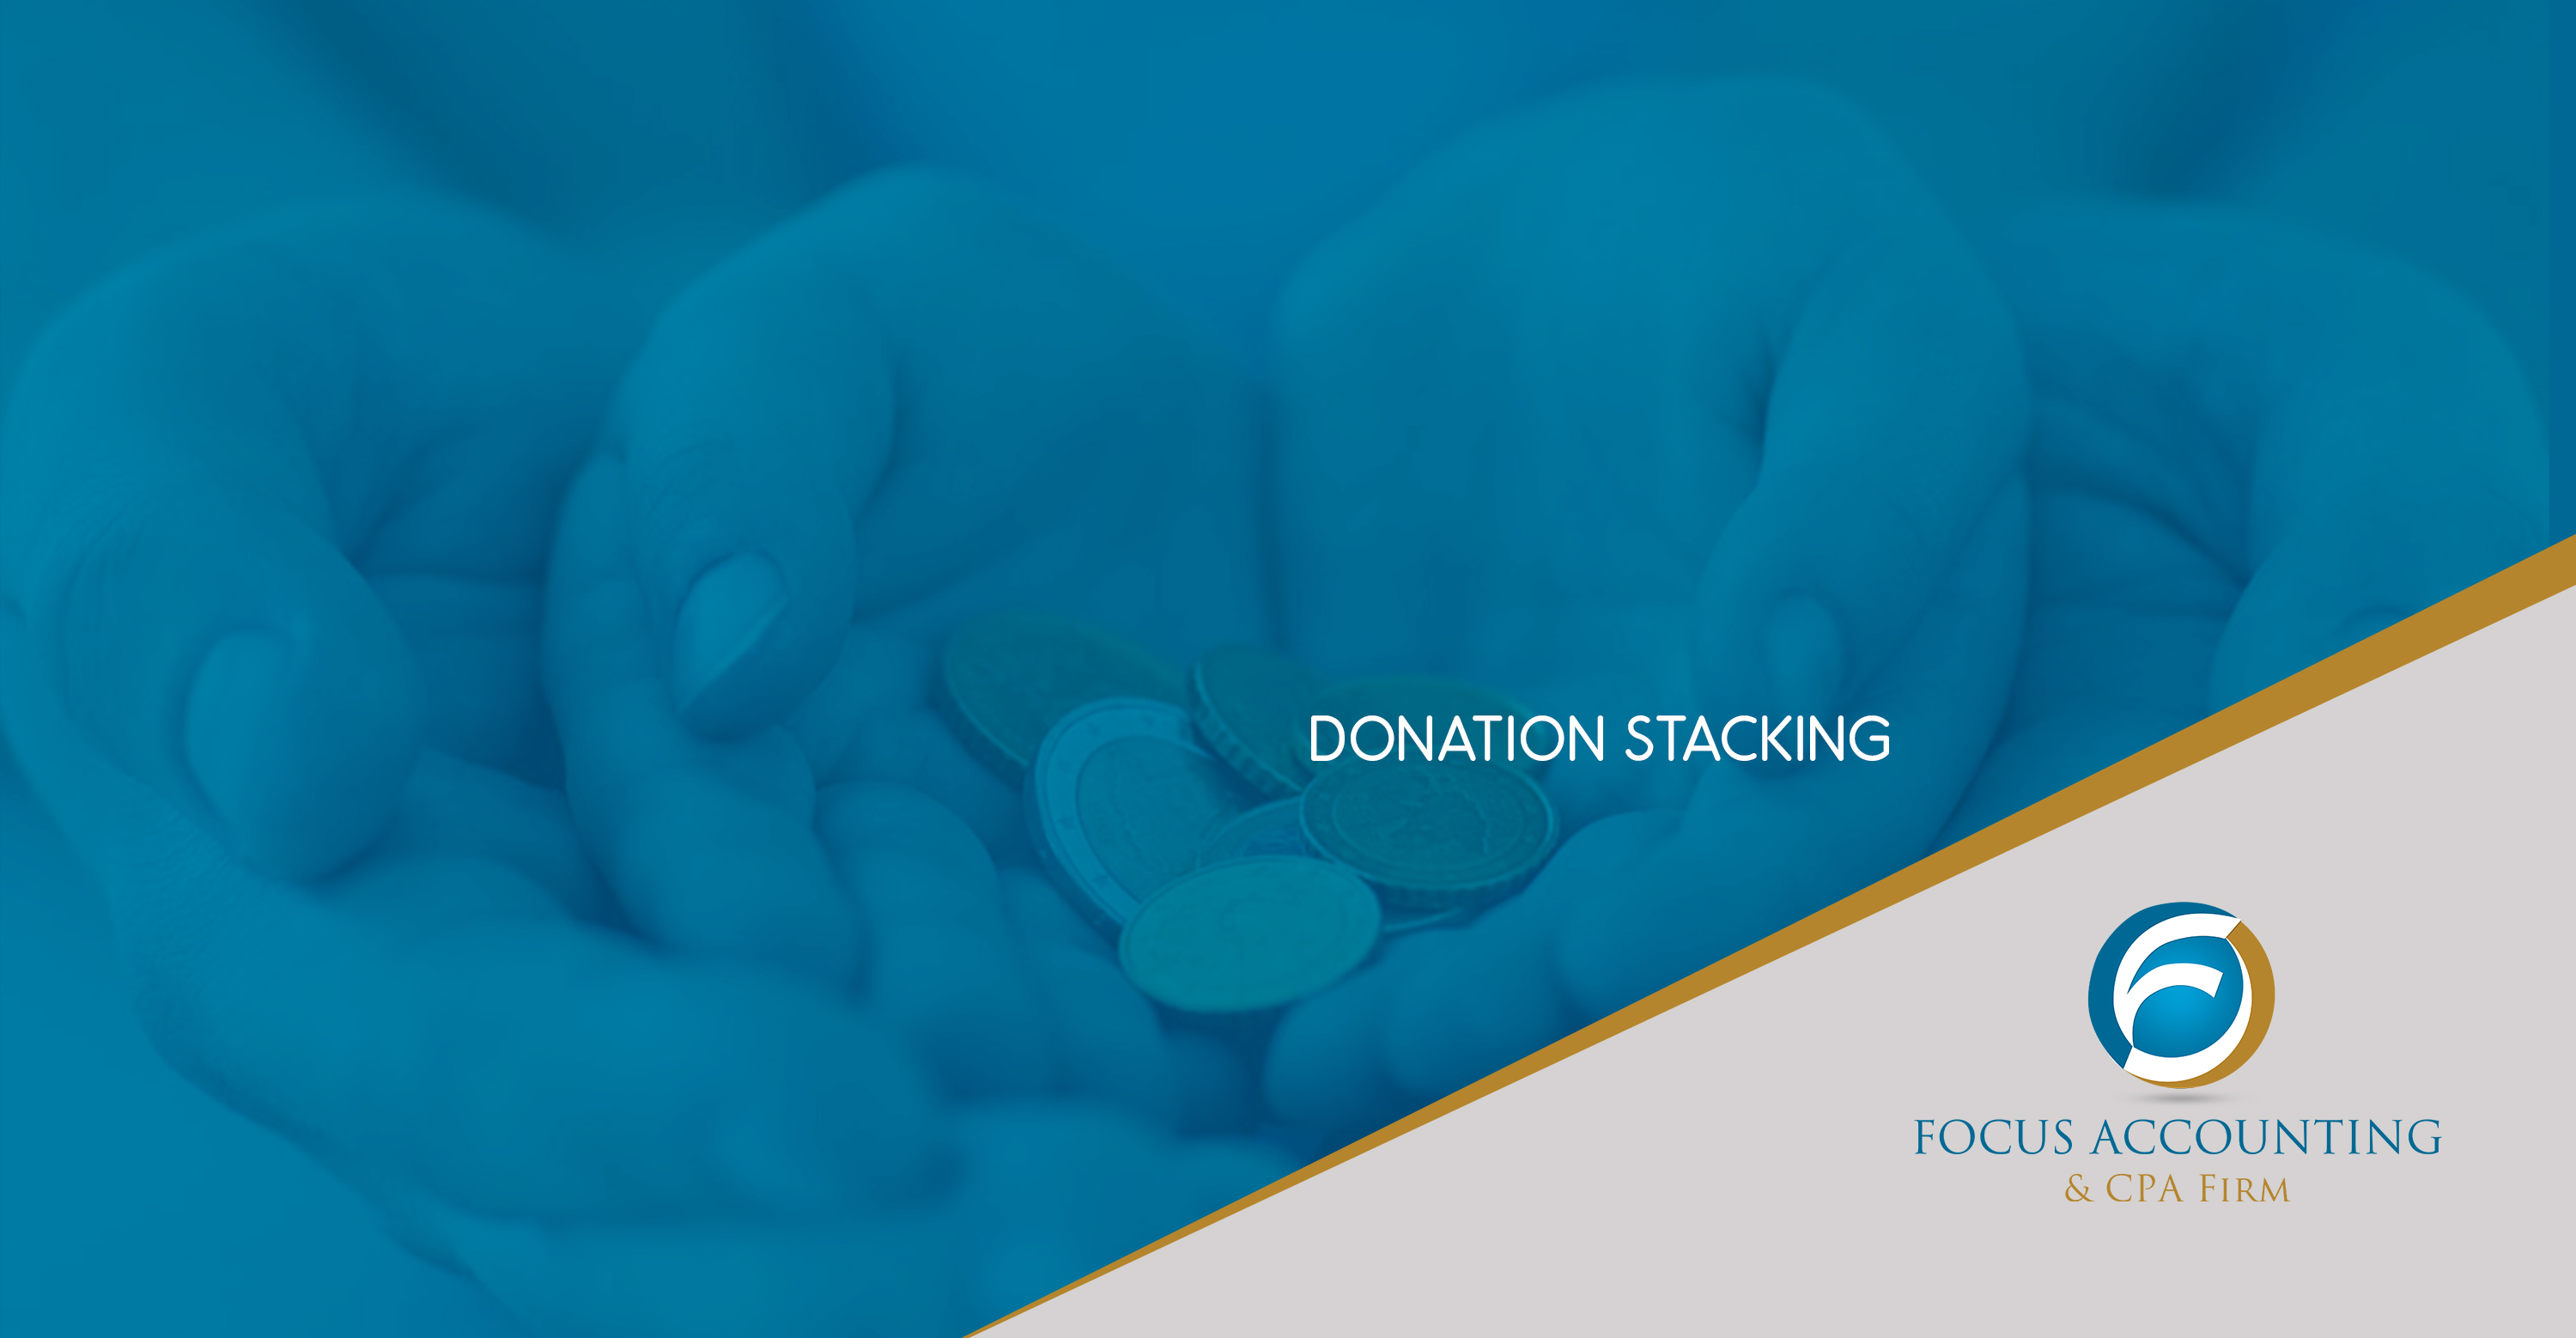 Donation Stacking